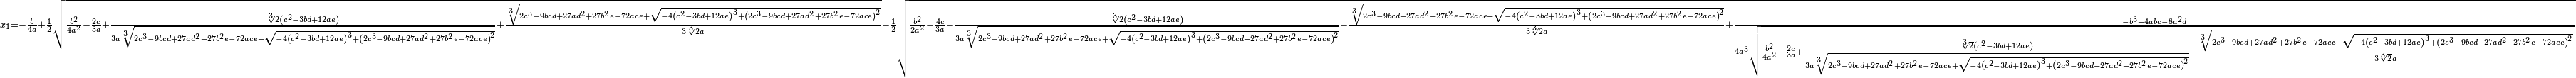 {}_{x_1=-\frac{b}{4a}+\frac{1}{2} \sqrt{\frac{b^2}{4a^2}-\frac{2c}{3a}+\frac{\sqrt[3]{2}\left(c^2-3bd+12ae\right)}{3a\sqrt[3]{2c^3-9bcd+27ad^2+27b^2e-72ace+\sqrt{-4\left(c^2-3bd+12ae\right)^3+\left(2c^3-9bcd+27ad^2+27b^2e-72ace\right)^2}}}+\frac{\sqrt[3]{2c^3-9bcd+27ad^2+27b^2e-72ace+\sqrt{-4\left(c^2-3bd+12ae\right)^3+\left(2c^3-9bcd+27ad^2+27b^2e-72ace\right)^2}}}{3\sqrt[3]{2}a}}-\frac{1}{2} \sqrt{\frac{b^2}{2a^2}-\frac{4c}{3a}-\frac{\sqrt[3]{2}\left(c^2-3bd+12ae\right)}{3a\sqrt[3]{2c^3-9bcd+27ad^2+27b^2e-72ace+\sqrt{-4\left(c^2-3bd+12ae\right)^3+\left(2c^3-9bcd+27ad^2+27b^2e-72ace\right)^2}}}-\frac{\sqrt[3]{2c^3-9bcd+27ad^2+27b^2e-72ace+\sqrt{-4\left(c^2-3bd+12ae\right)^3+\left(2c^3-9bcd+27ad^2+27b^2e-72ace\right)^2}}}{3\sqrt[3]{2}a}+\frac{-b^3+4abc-8a^2d}{4a^3\sqrt{\frac{b^2}{4a^2}-\frac{2c}{3a}+\frac{\sqrt[3]{2}\left(c^2-3bd+12ae\right)}{3a\sqrt[3]{2c^3-9bcd+27ad^2+27b^2e-72ace+\sqrt{-4\left(c^2-3bd+12ae\right)^3+\left(2c^3-9bcd+27ad^2+27b^2e-72ace\right)^2}}}+\frac{\sqrt[3]{2c^3-9bcd+27ad^2+27b^2e-72ace+\sqrt{-4\left(c^2-3bd+12ae\right)^3+\left(2c^3-9bcd+27ad^2+27b^2e-72ace\right)^2}}} {3\sqrt[3]{2}a}}}}}